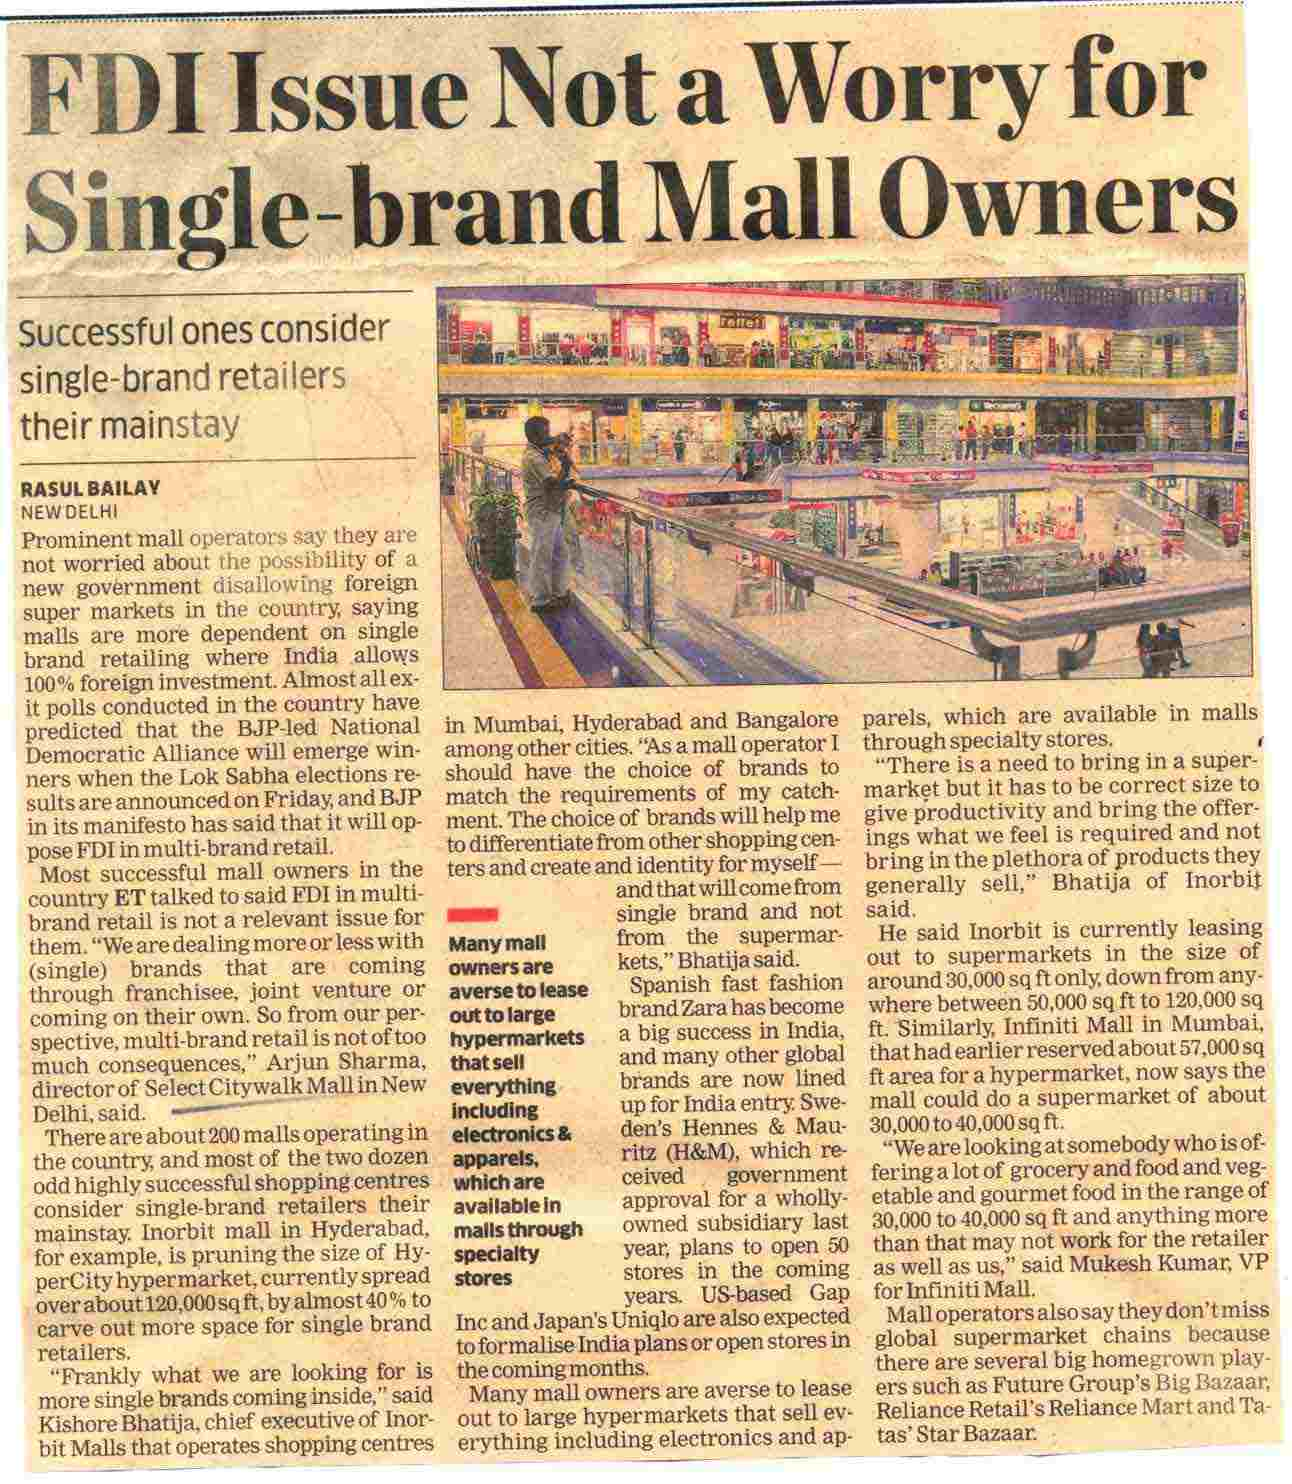 FDI Issue Not a Worry for Single-brand Mall Owners